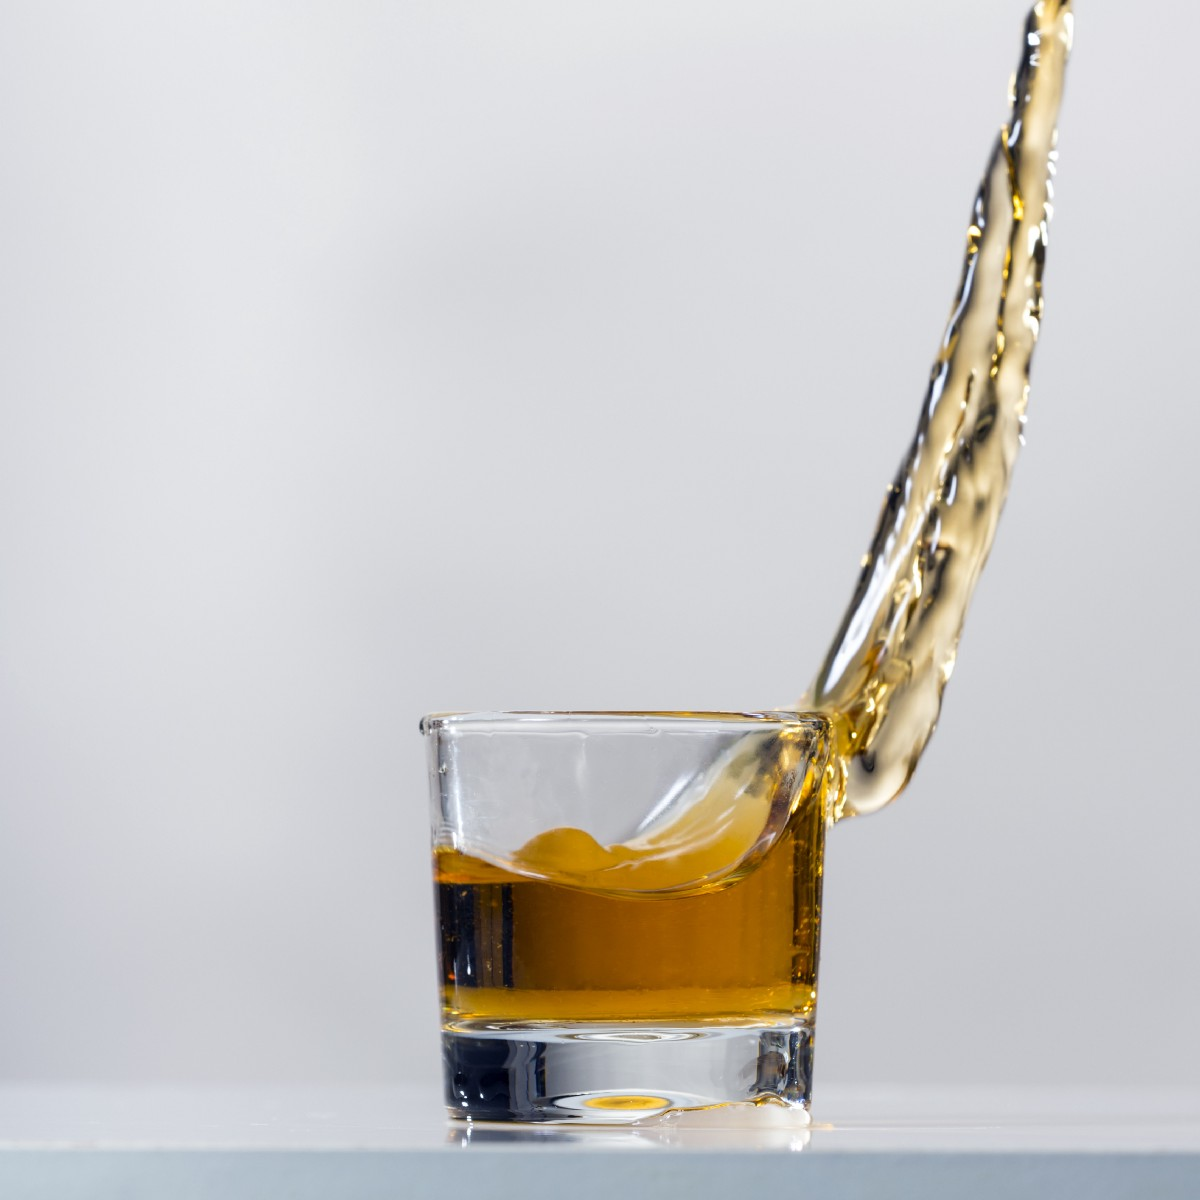 The Latest Findings on Why It's So Hard to Quit Drinking